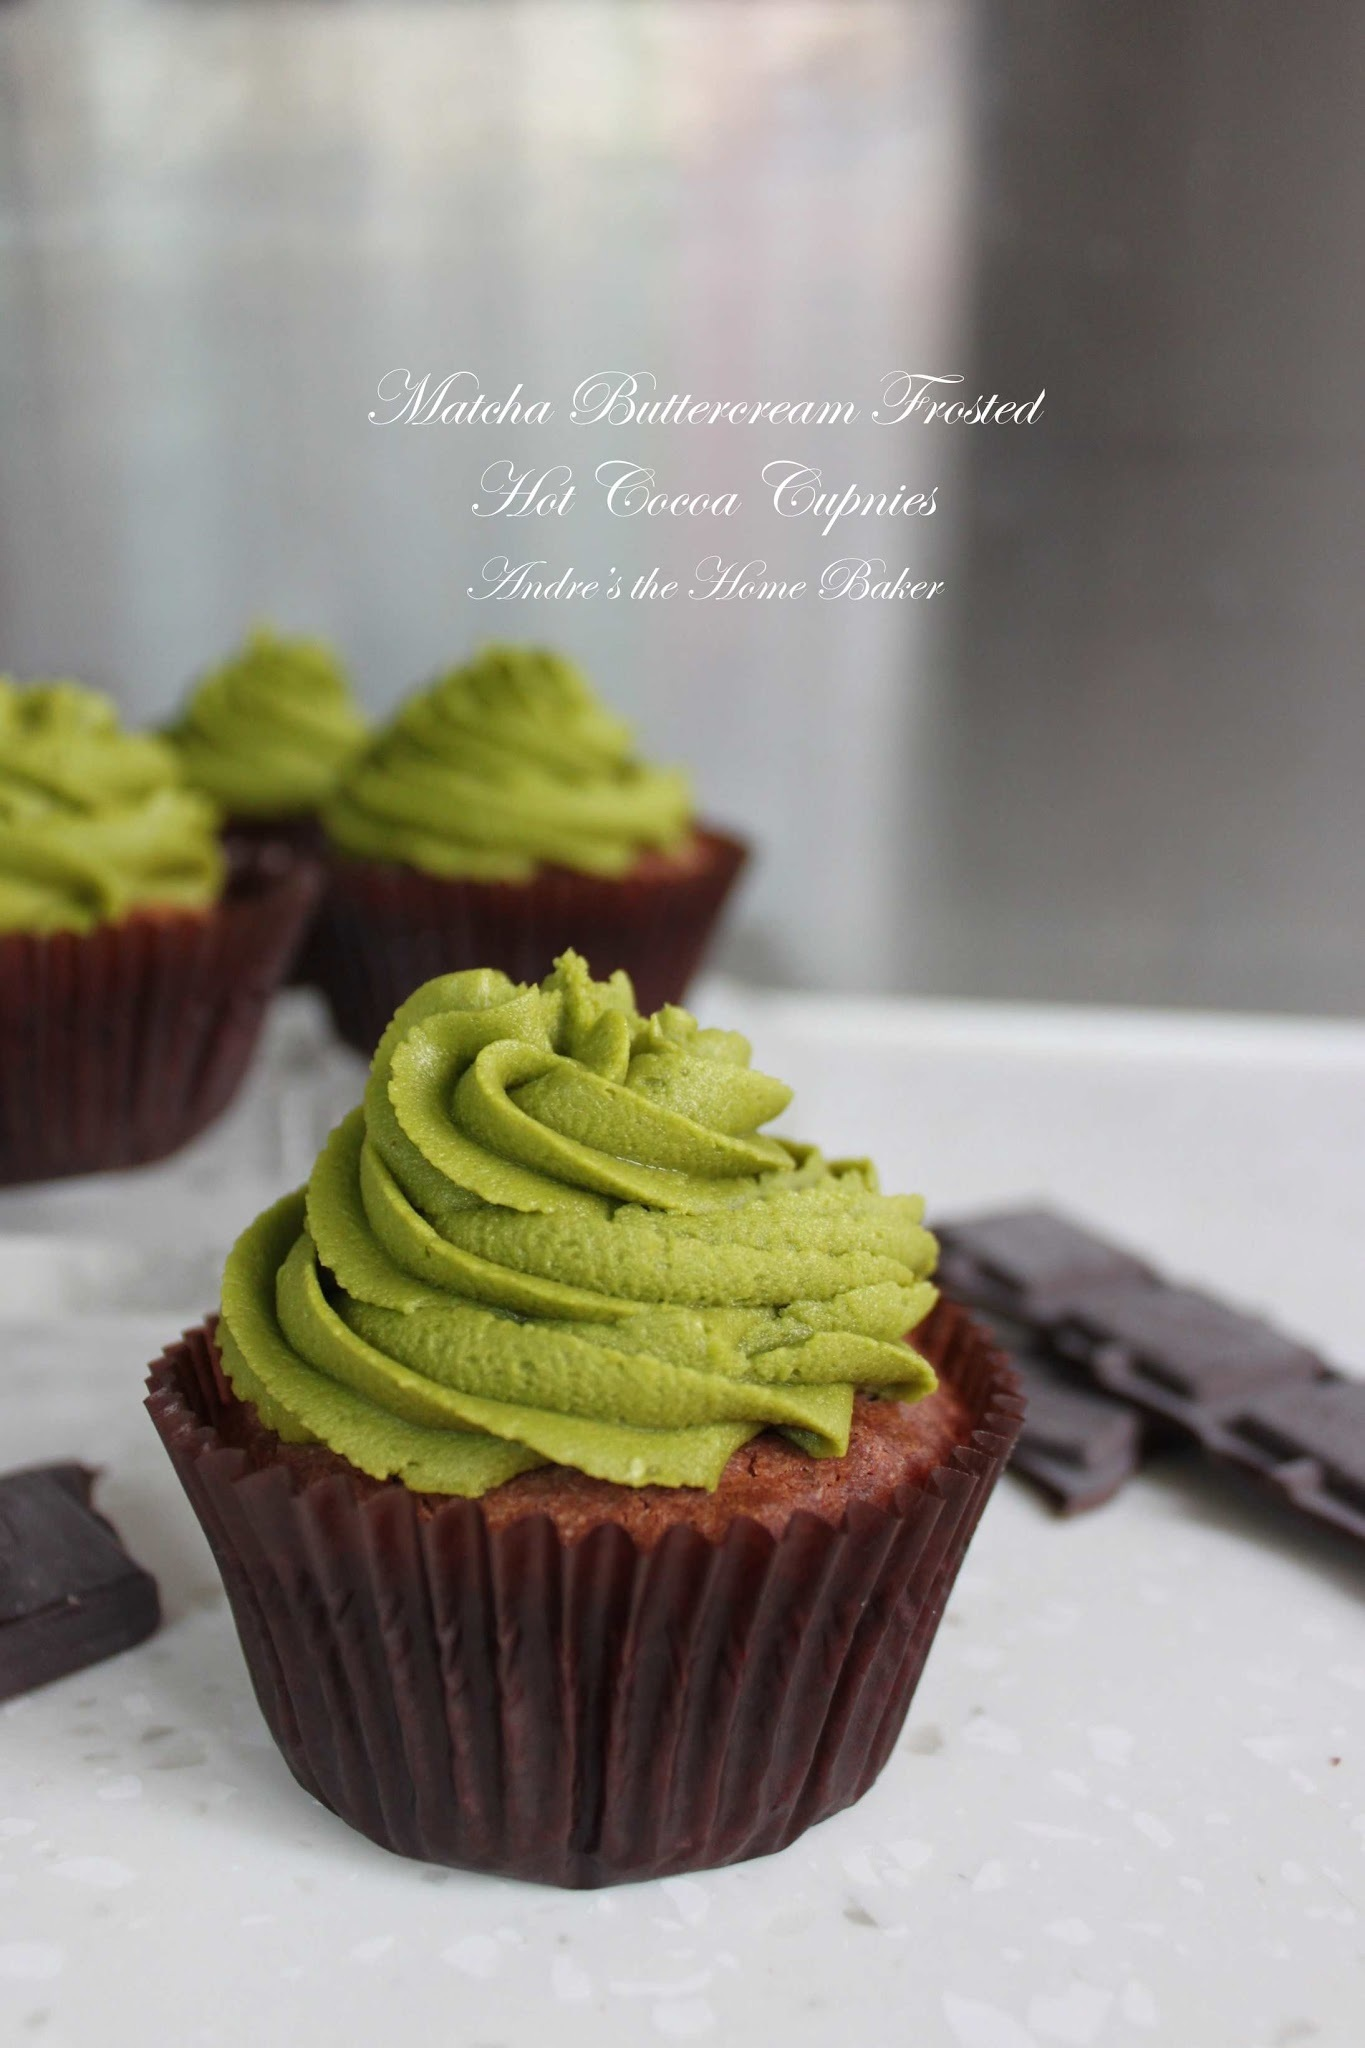 ♥ Matcha Buttercream Frosted Hot Cocoa Cupnies ♥